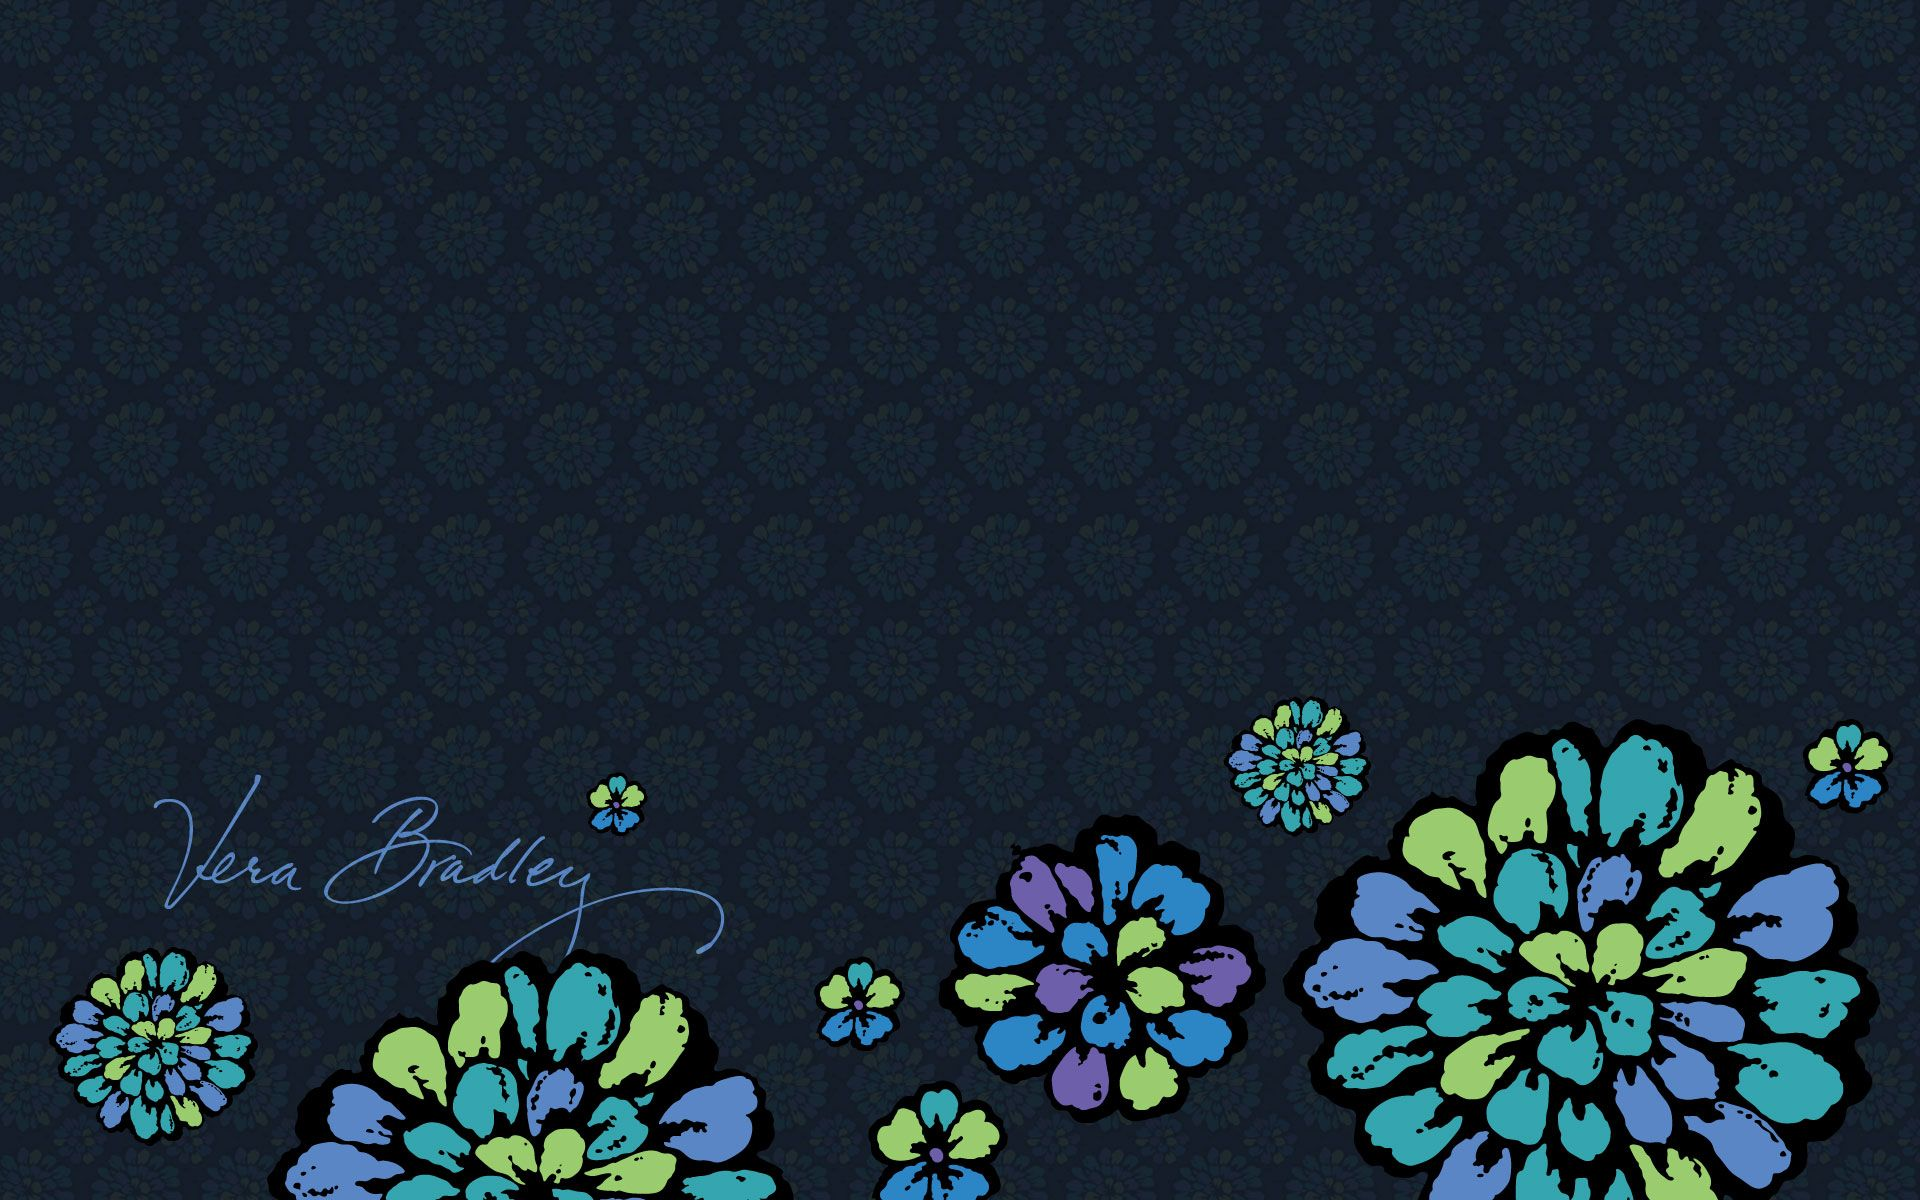 Vera Bradley Backgrounds For Your Computer Tablet Or Smart Phone